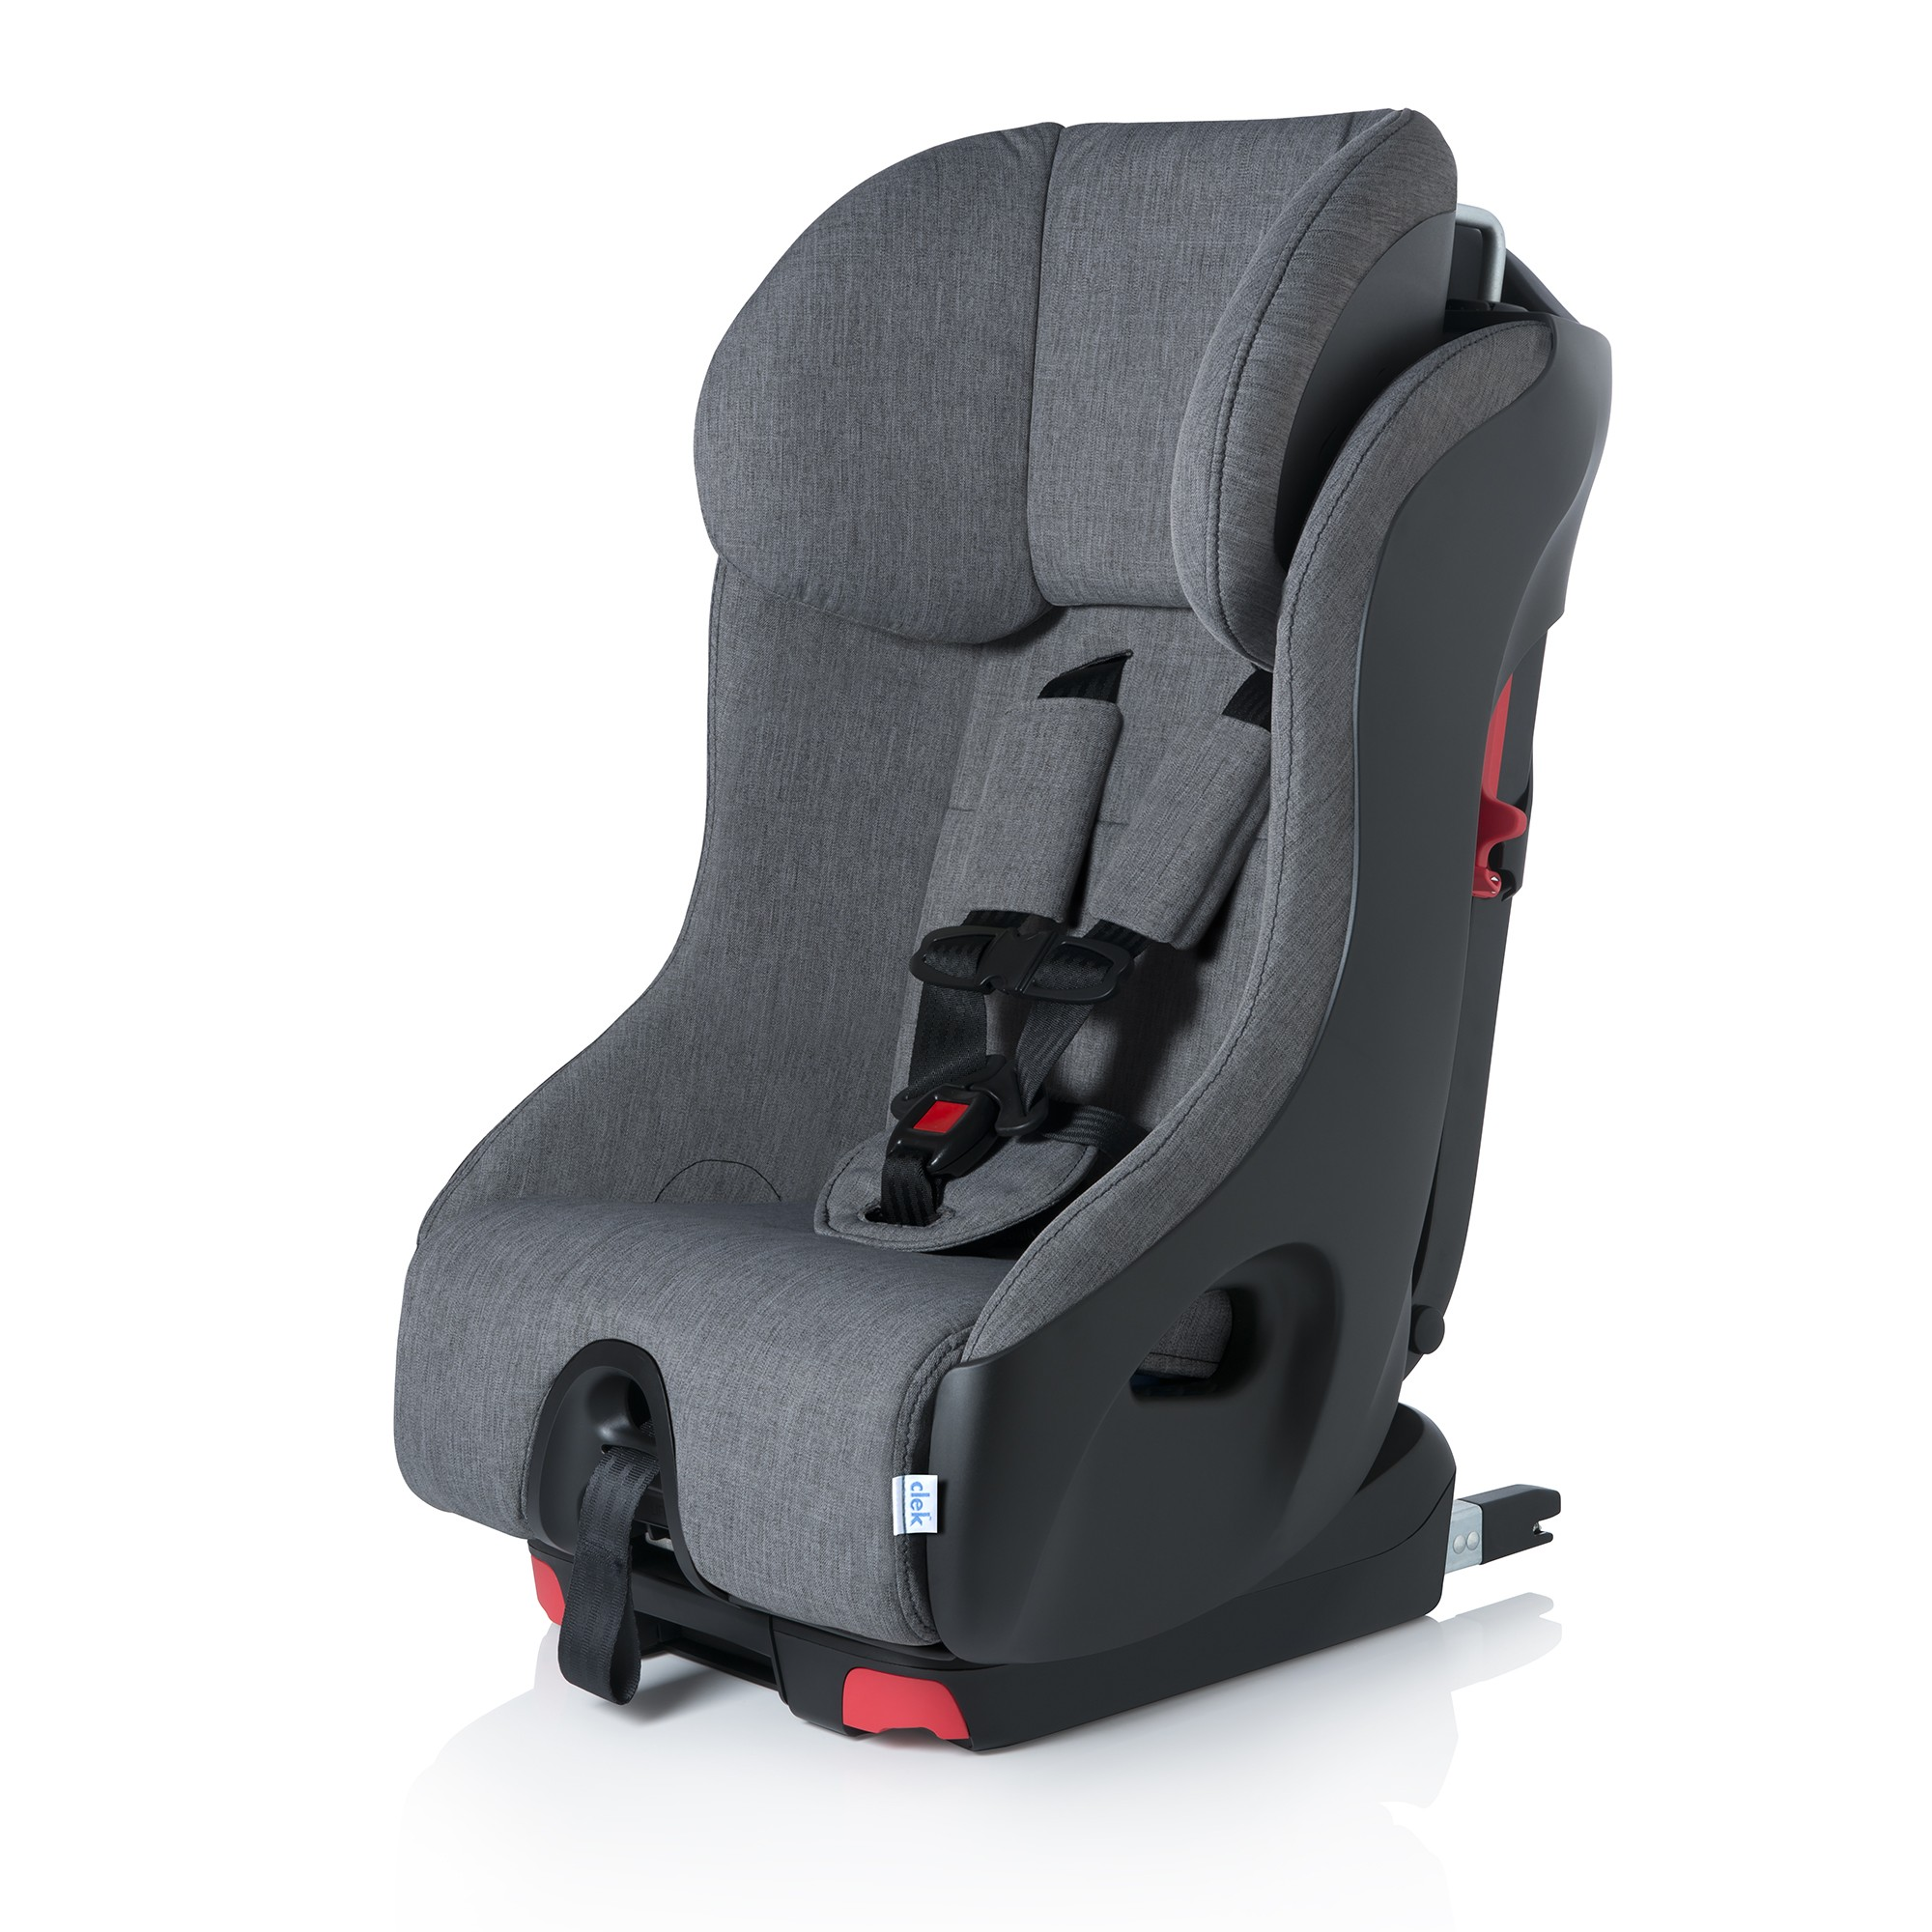 How To Remove Clek Foonf Car Seat